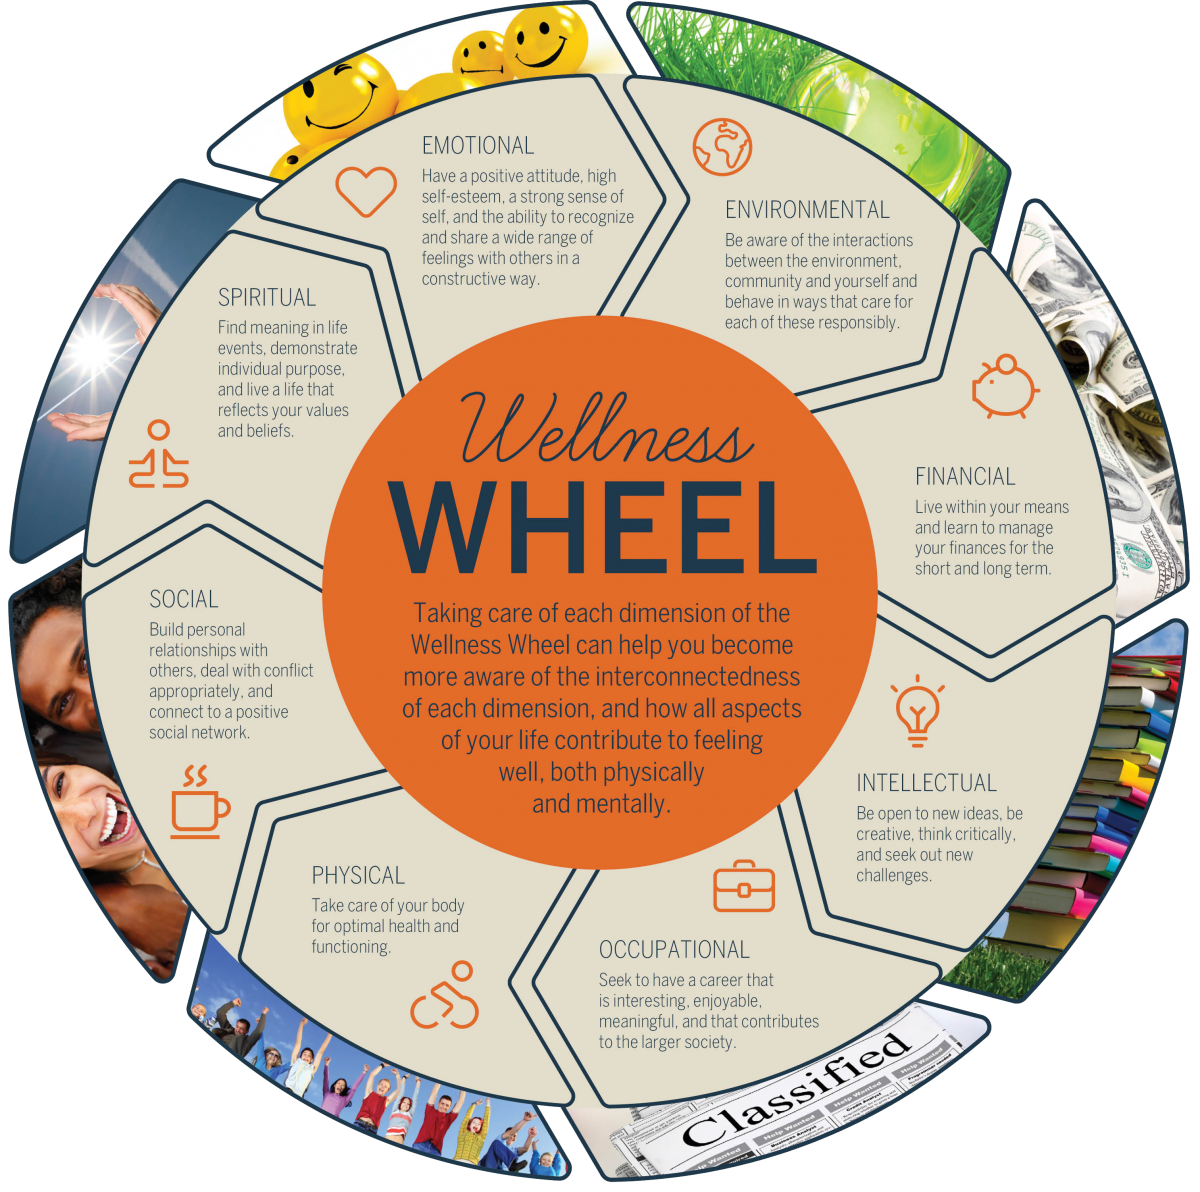 Health & Wellness or Happiness wheels can be found in many formats, but all were designed to help people self-assess the balance in their lives. The same can be applied to preparedness to ensure we aren't overly concentrating on one aspect while ignoring another.